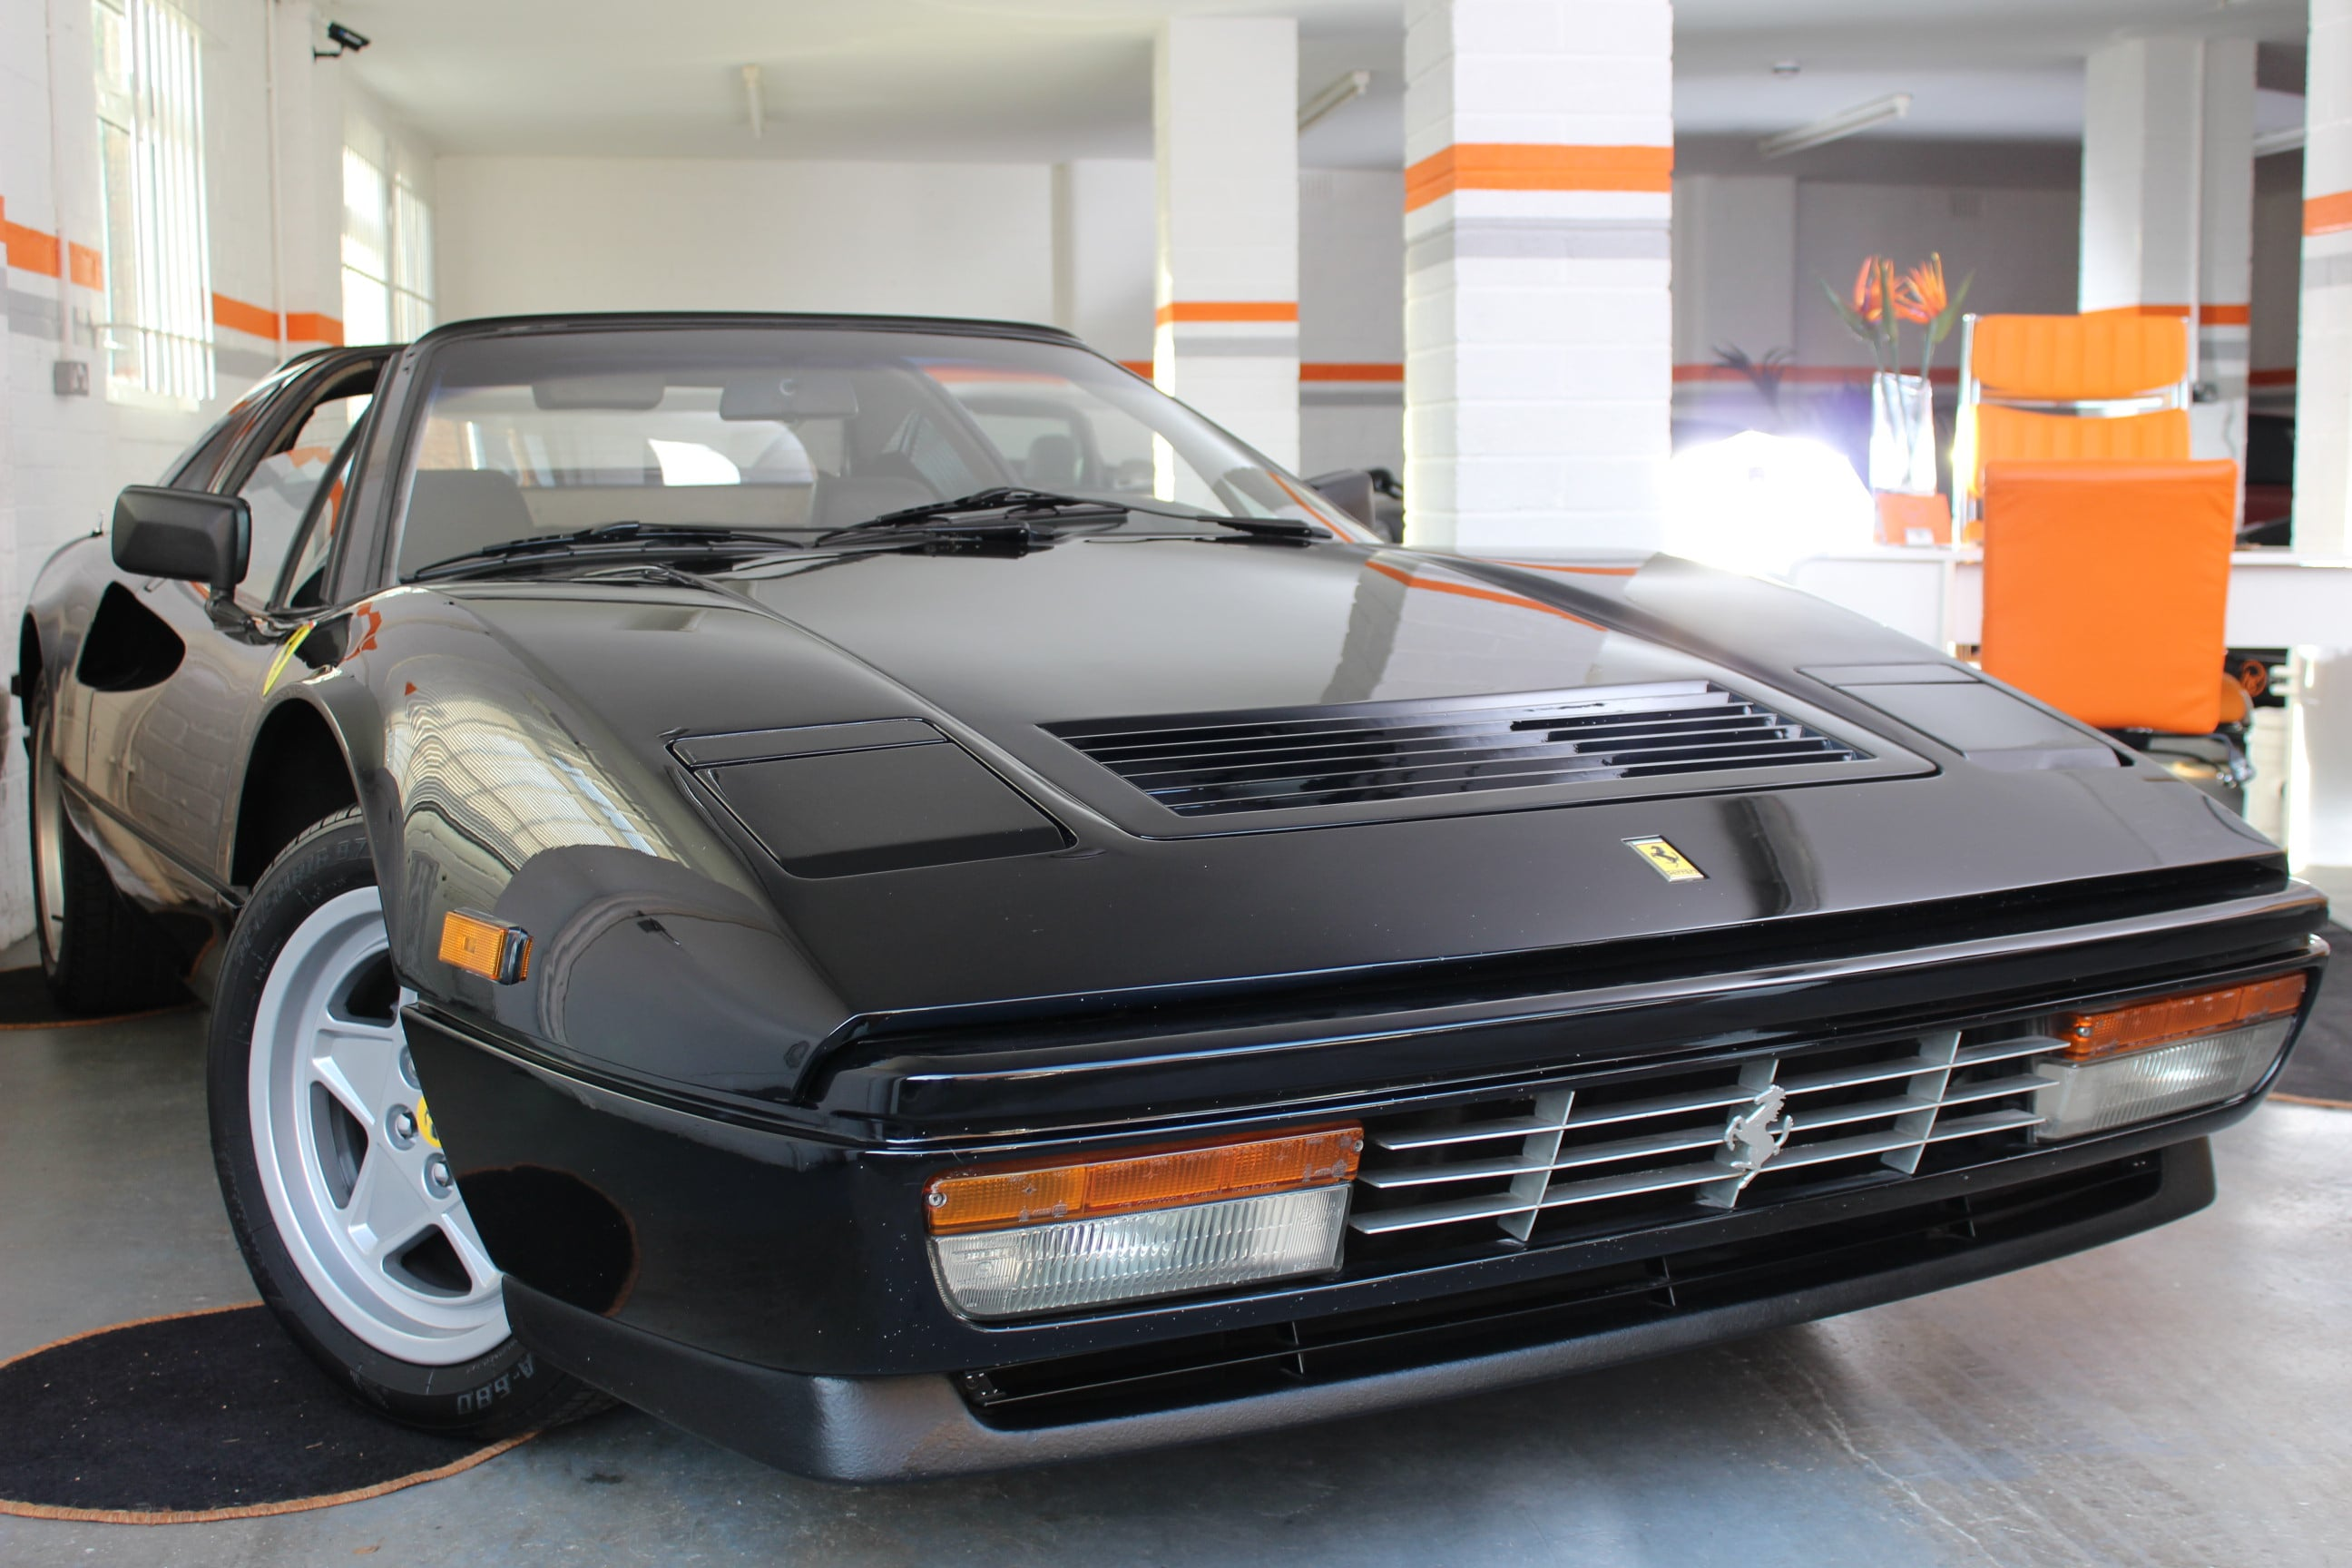 A-1 Inspiring Ferrari Mondial T Cabriolet Occasion Cars Trend